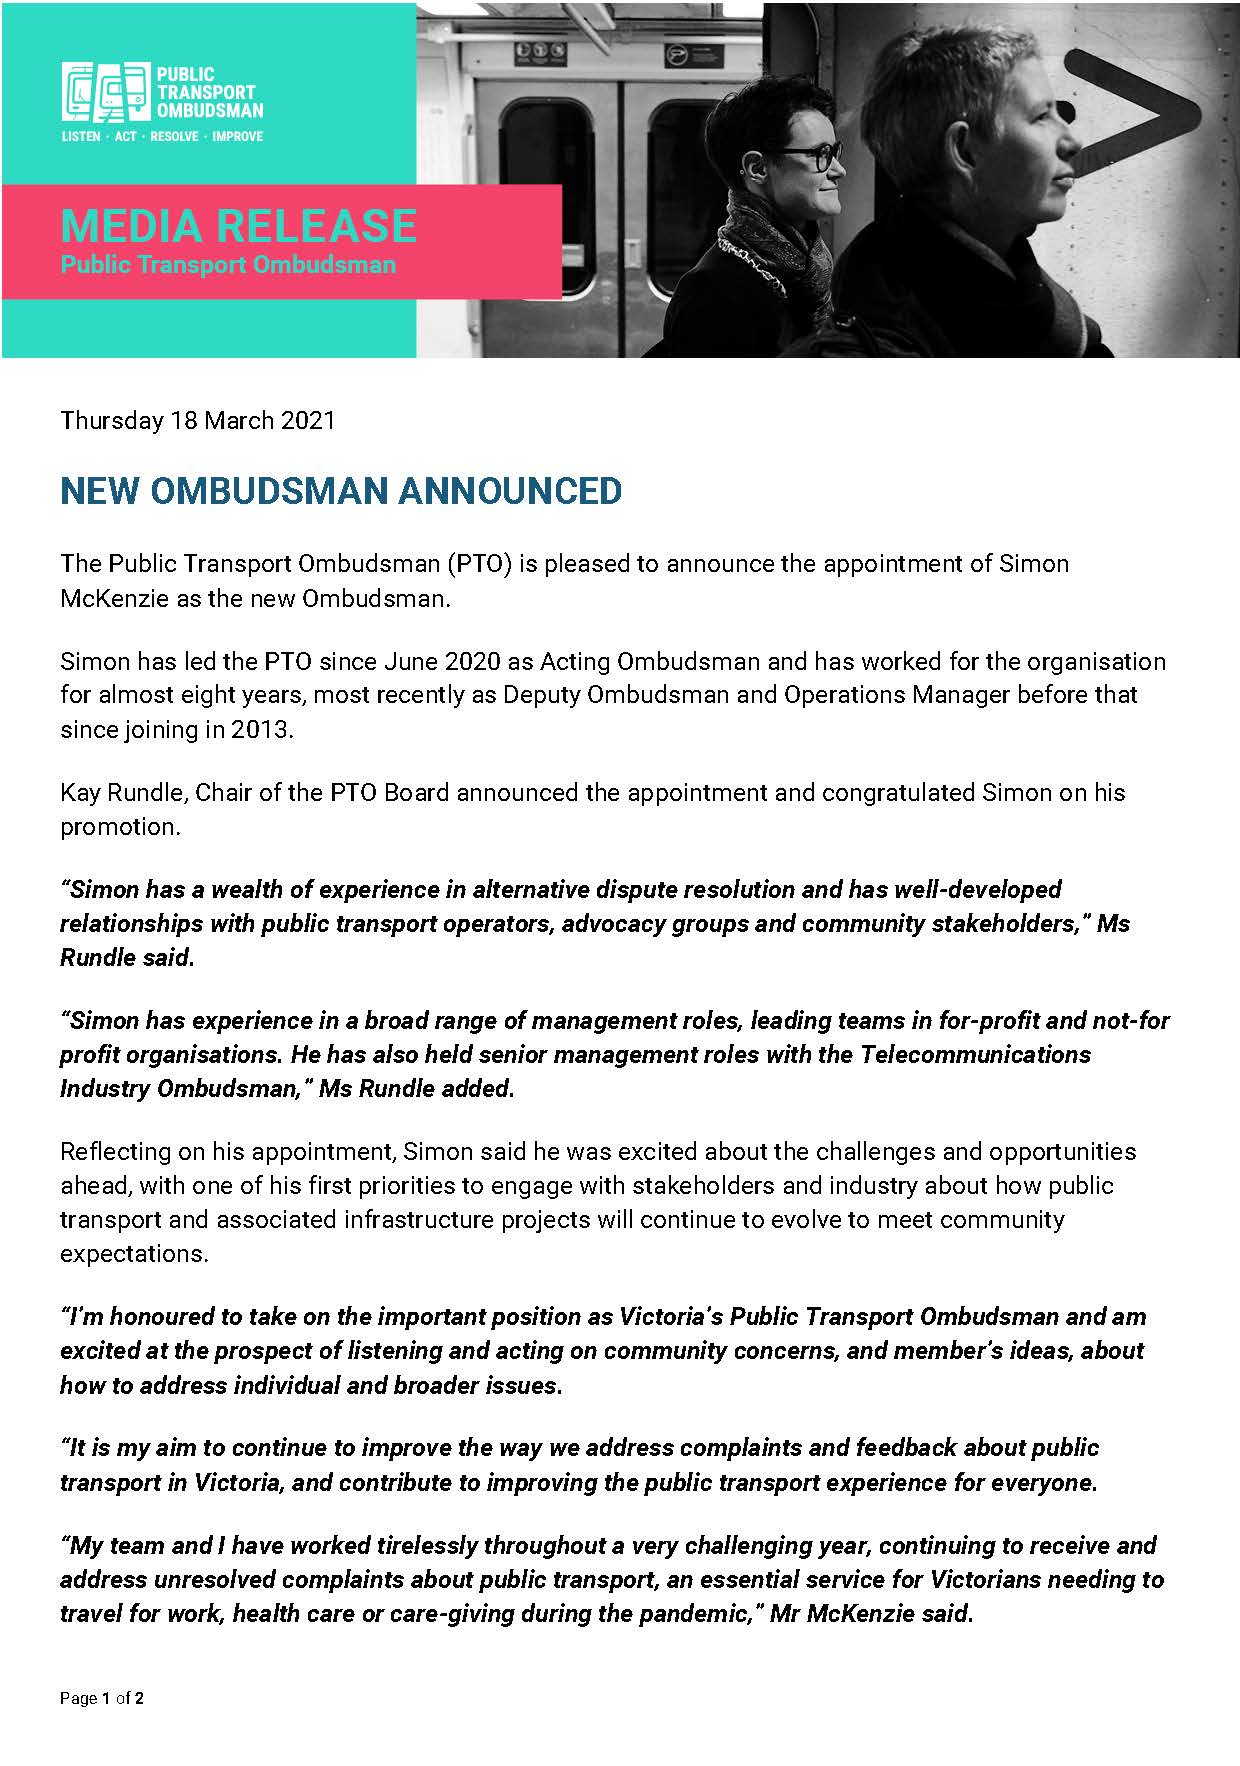 Thumbnail image shows the media release for the appointment of Simon McKenzie as the new Public Transport Ombudsman.